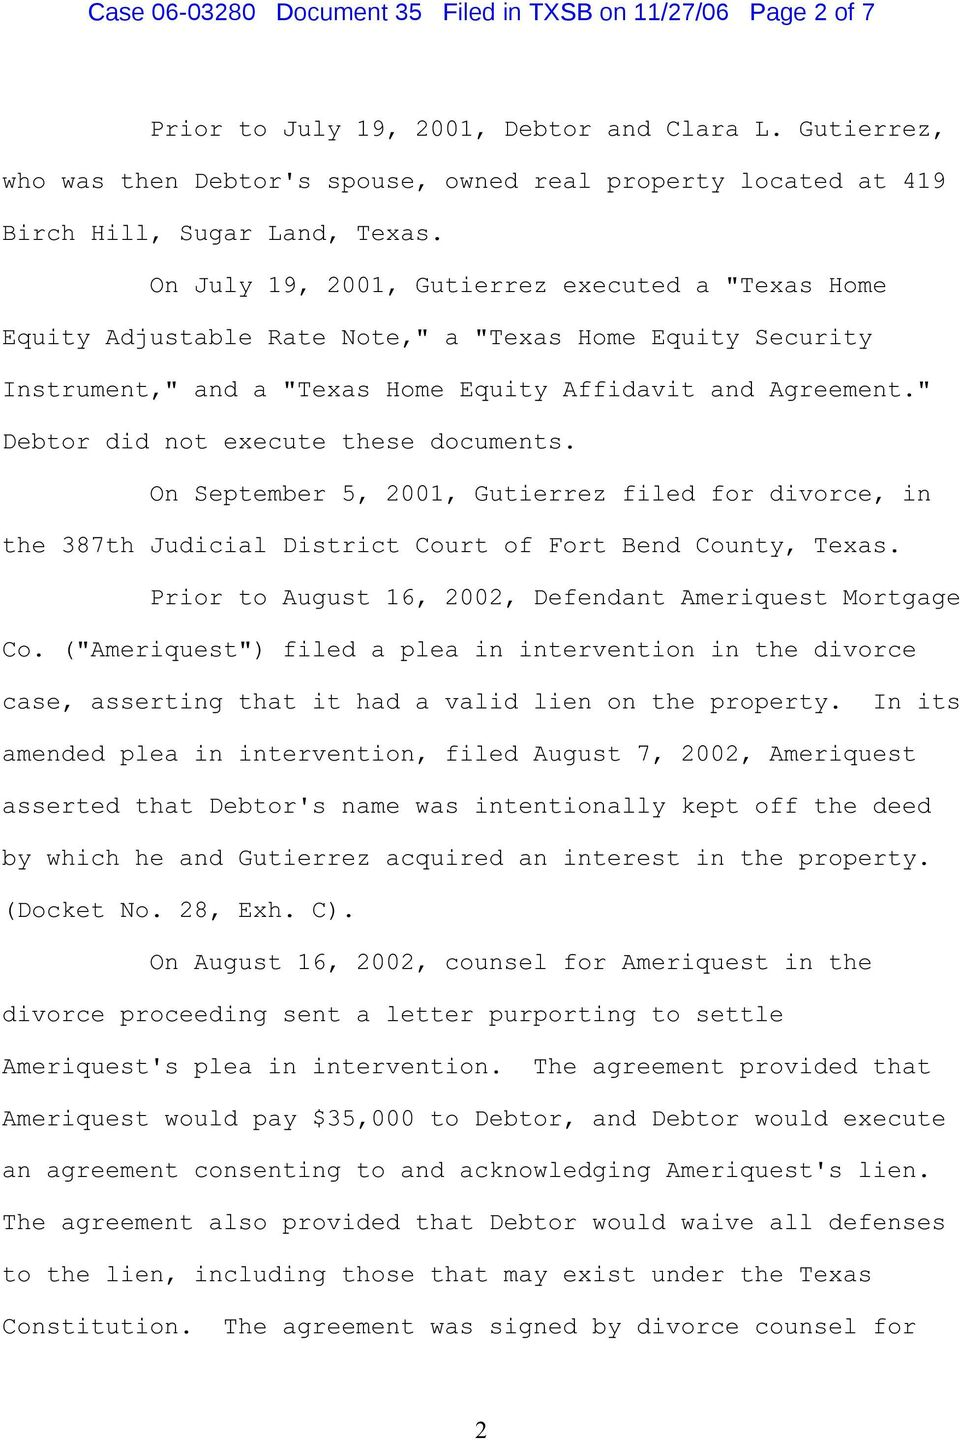 "On July 19, 2001, Gutierrez executed a ""Texas Home Equity Adjustable Rate Note,"" a ""Texas Home Equity Security Instrument,"" and a ""Texas Home Equity Affidavit and Agreement."